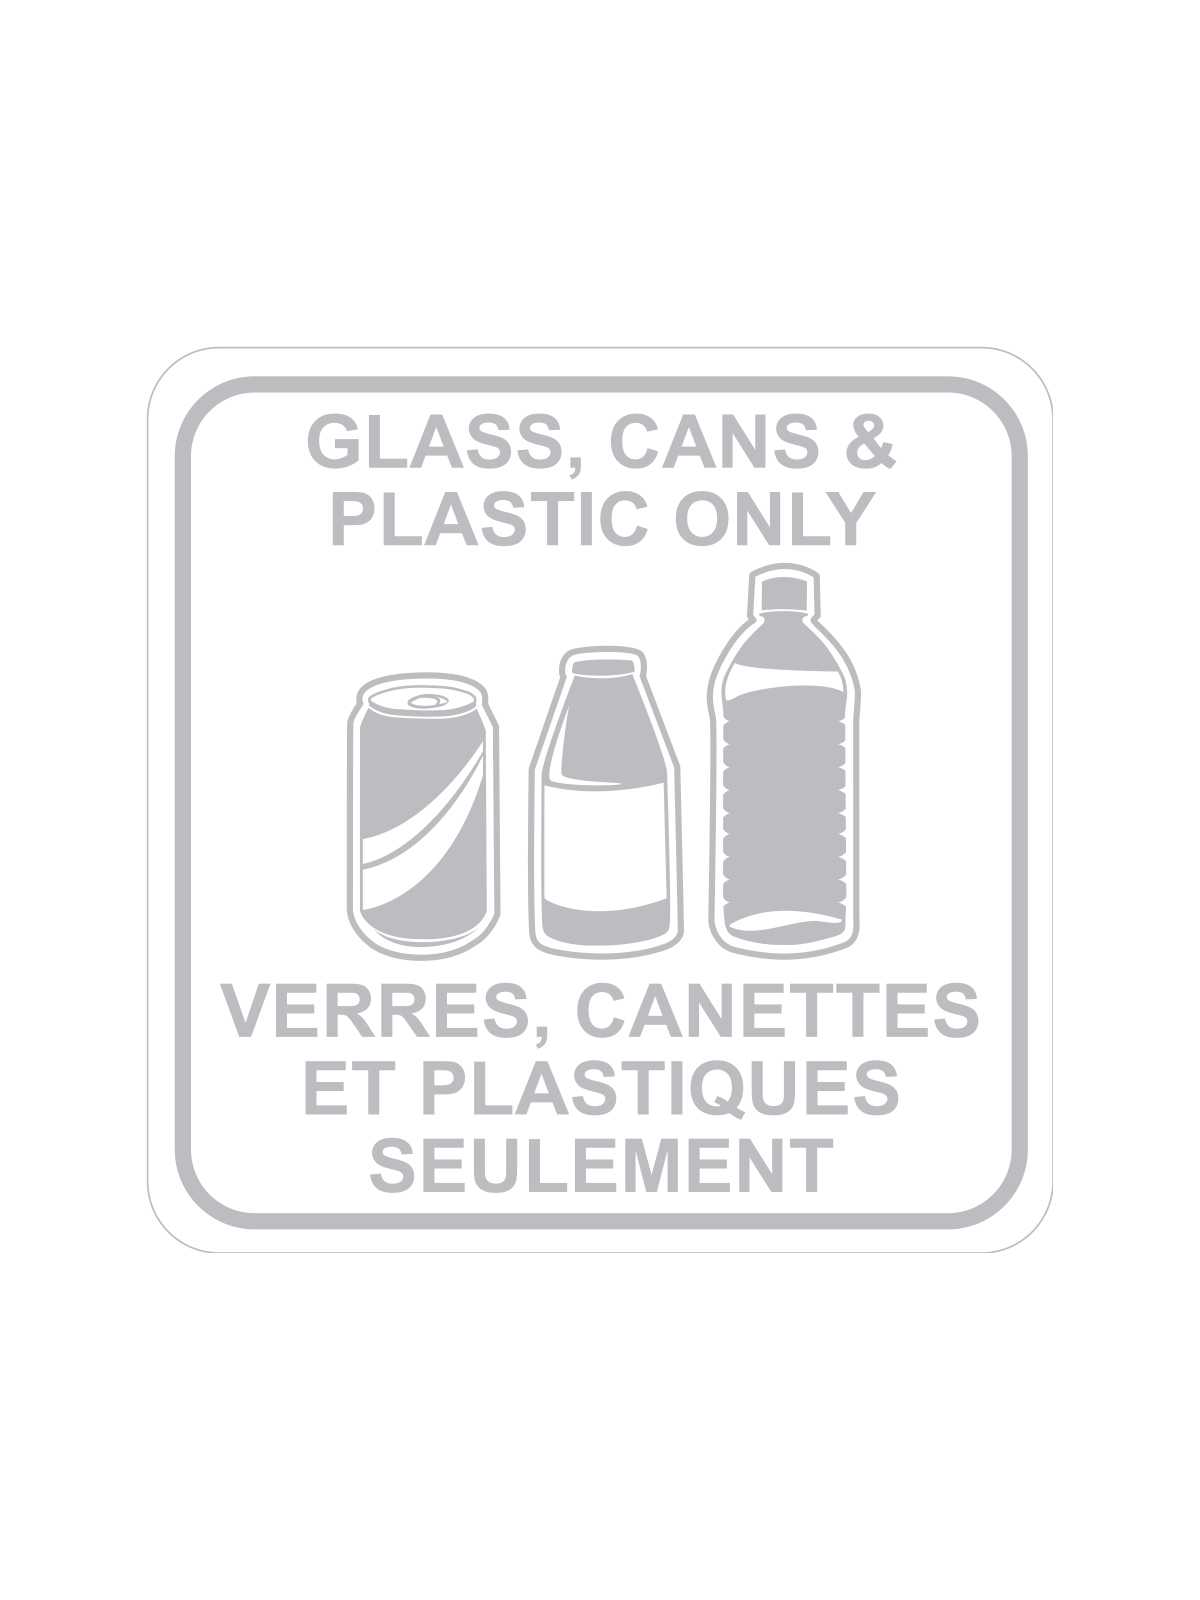 SQUARE LABEL GLASS, CANS & PLASTIC ONLY - ENG/FRE